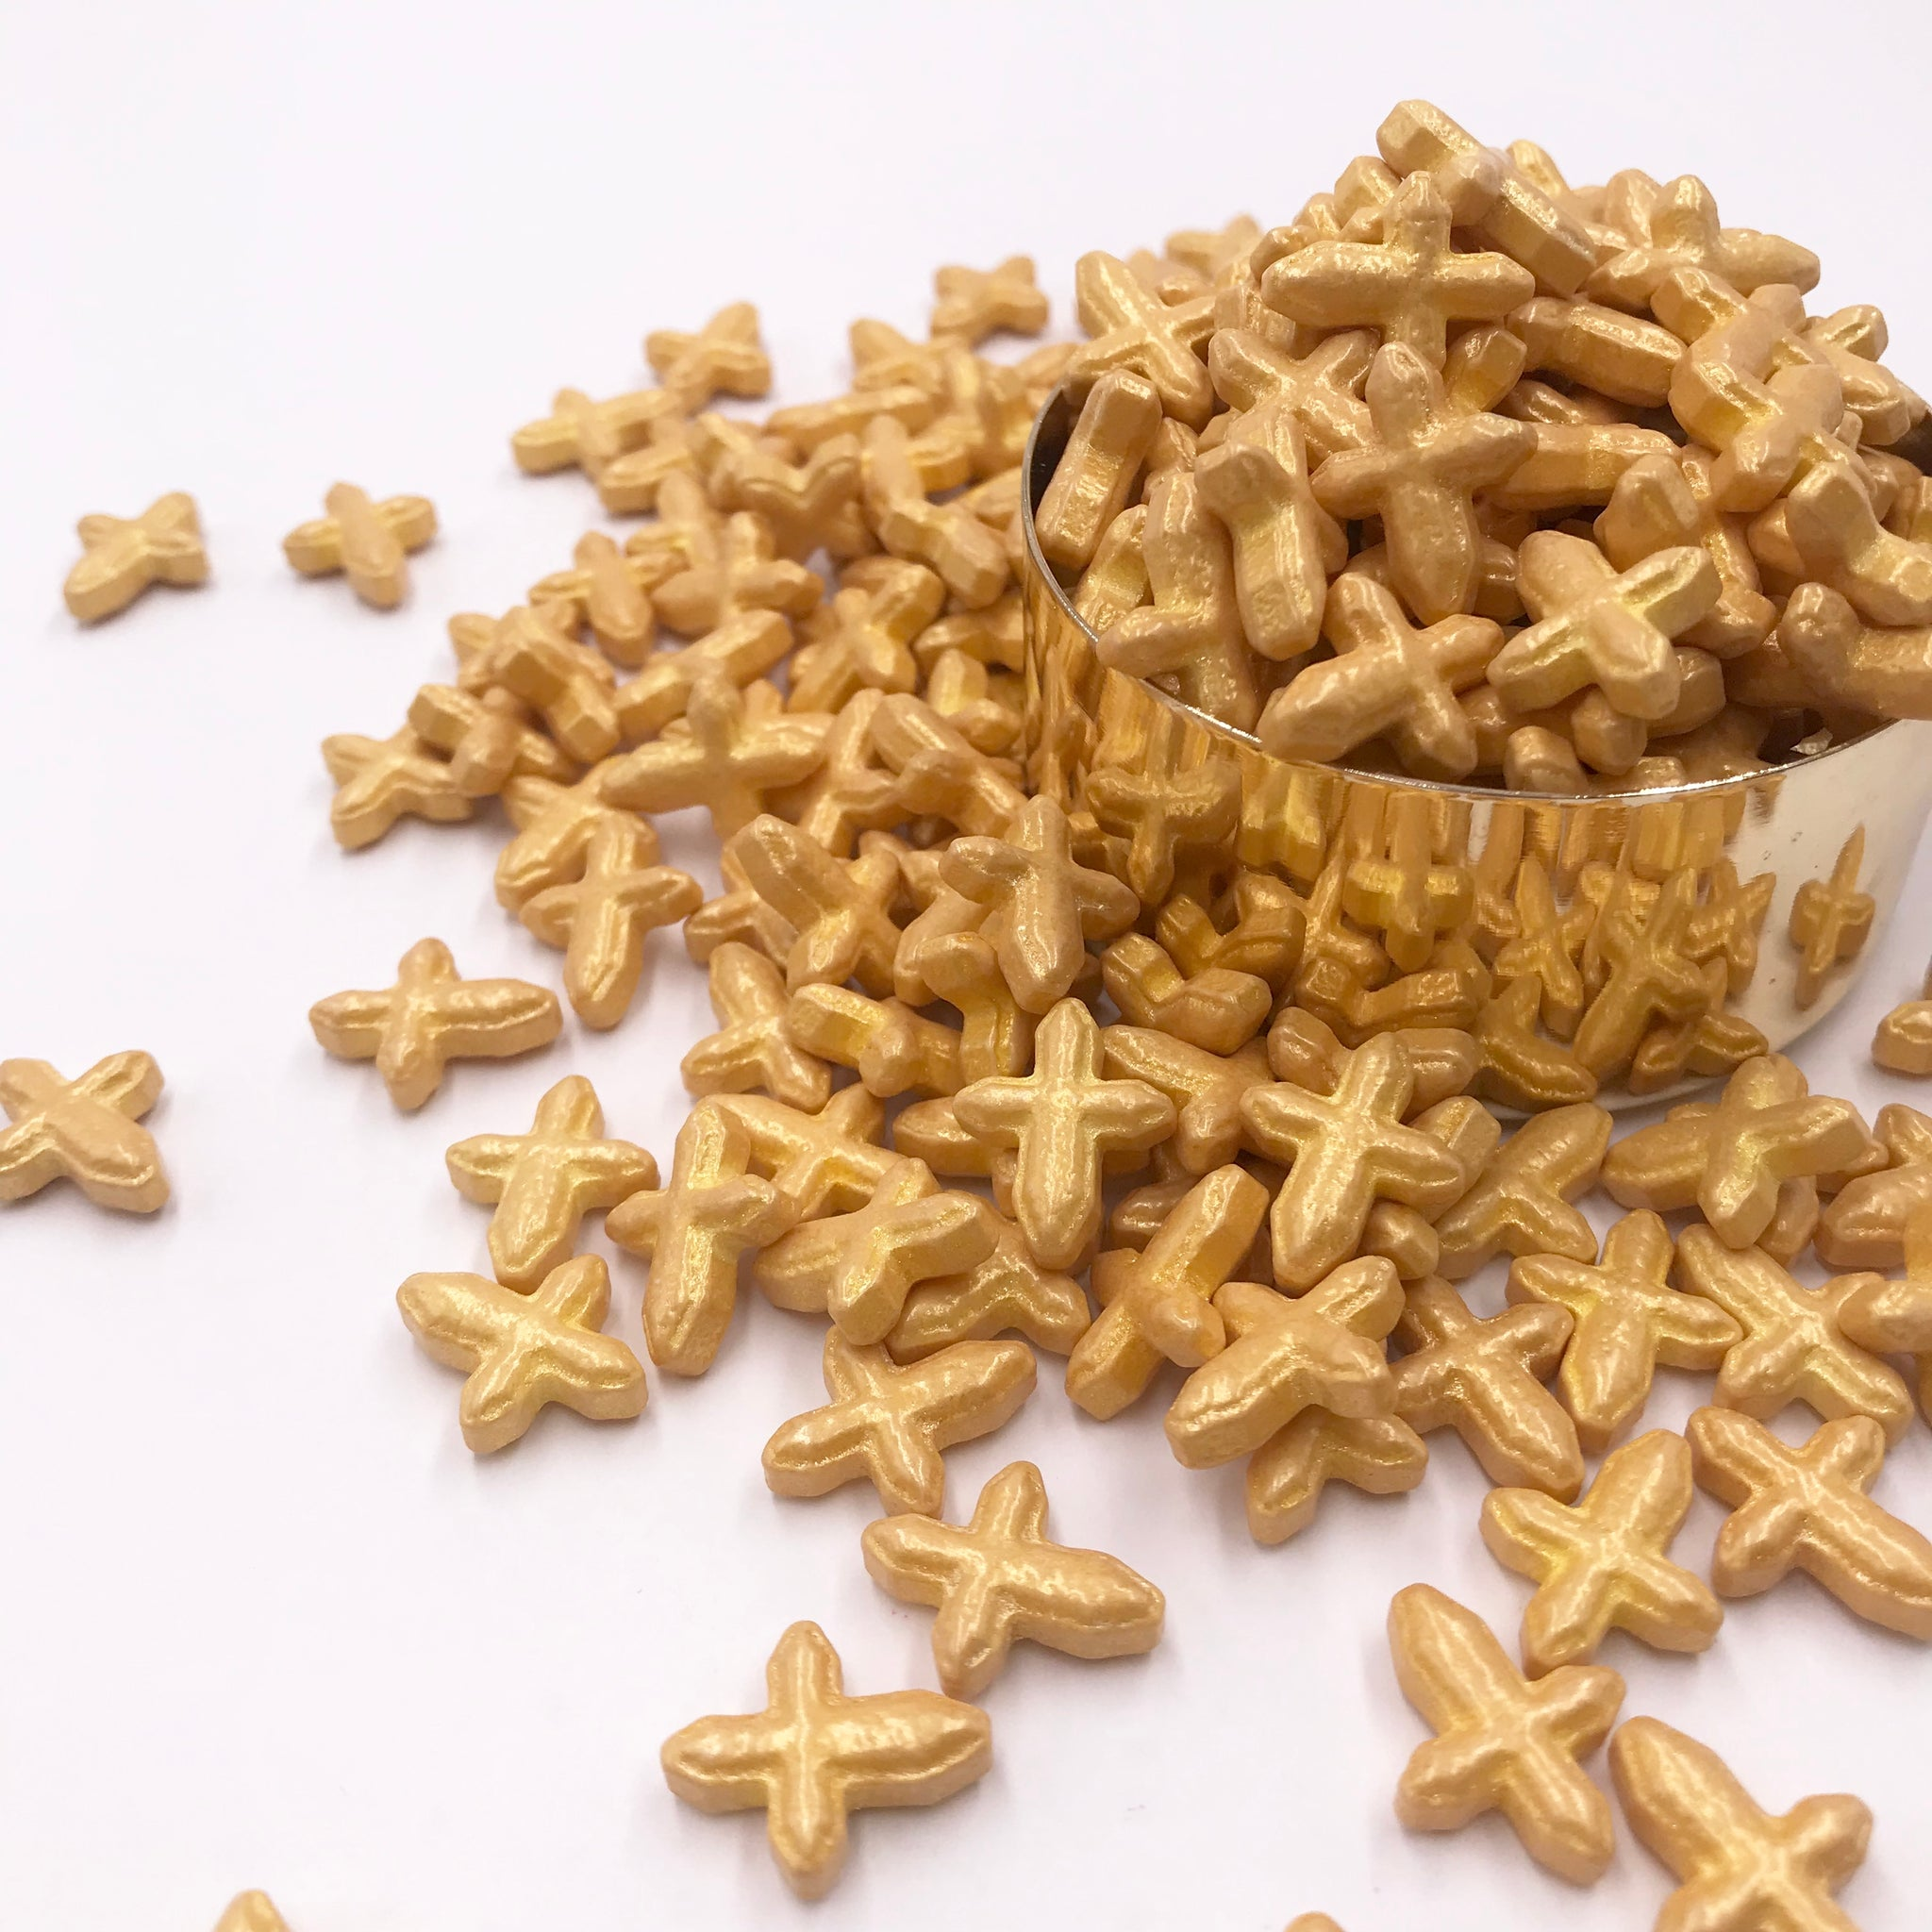 Sprinkles | Gold Cross Sprinkles | Edible Sprinkles | Cake Decorations | Candy | Cross Sprinkles